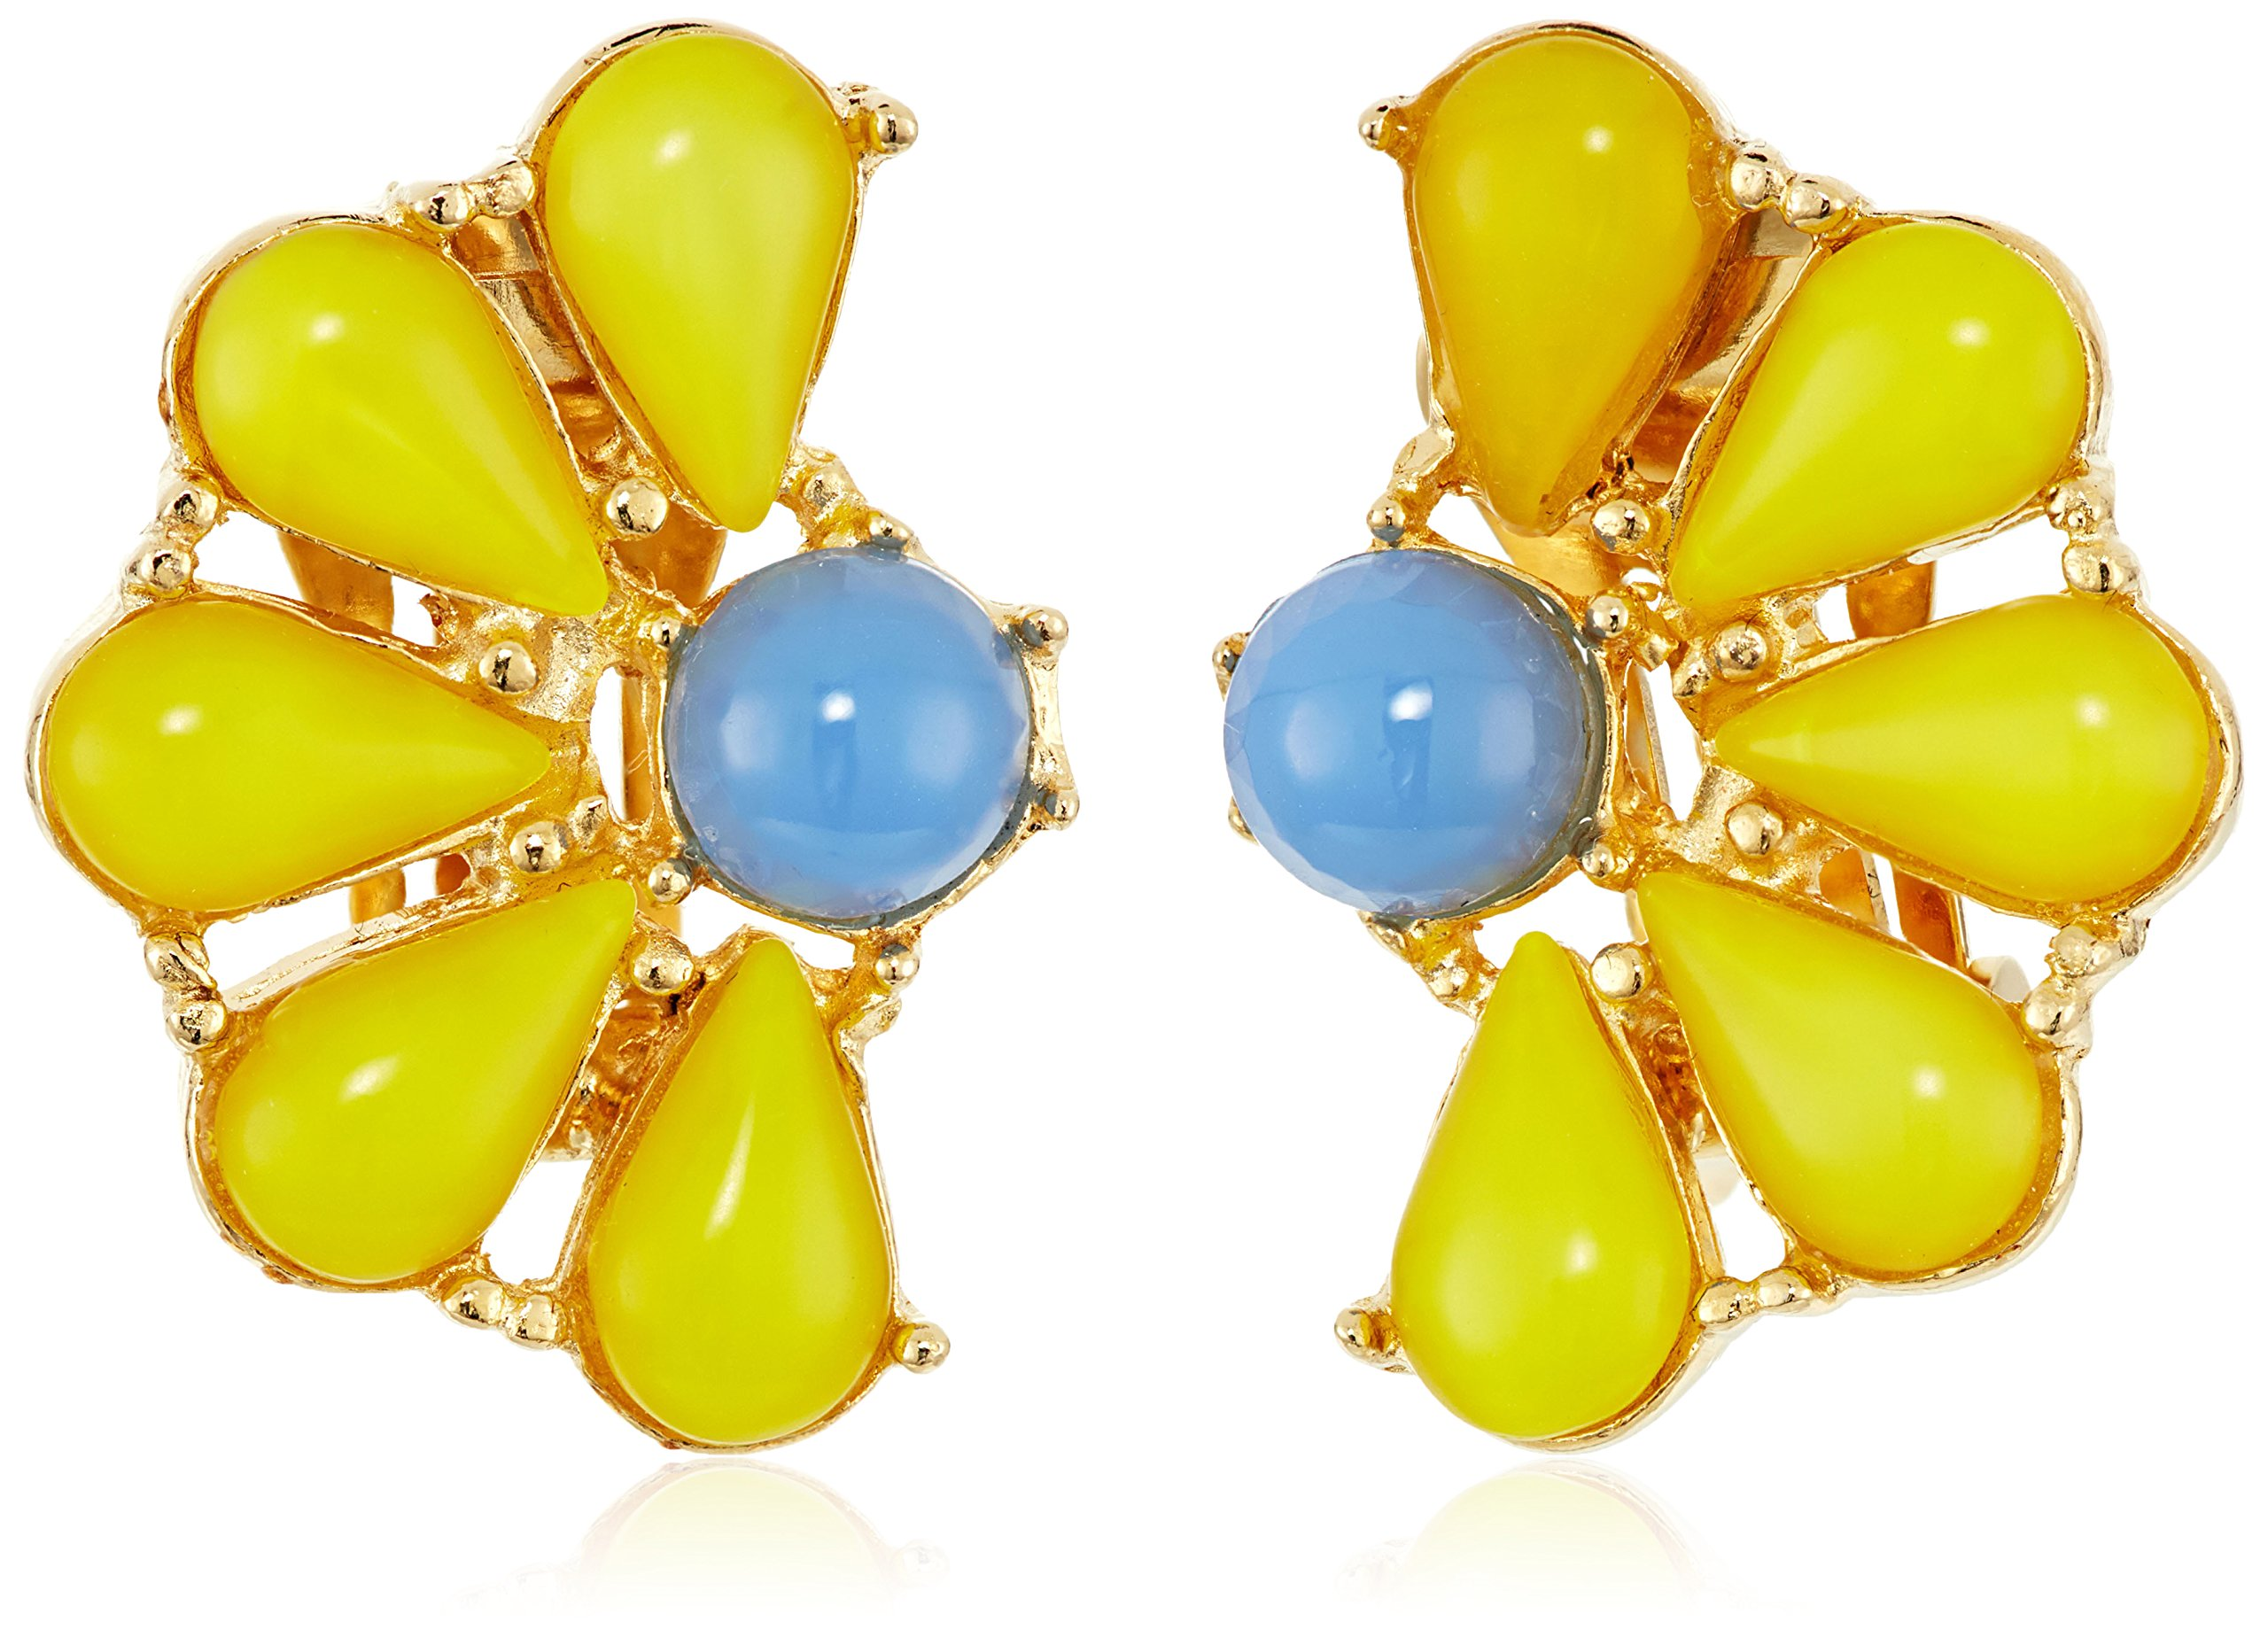 Ben-Amun Jewelry Garden Escape Daisy Clip-On Earrings by Ben-Amun Jewelry